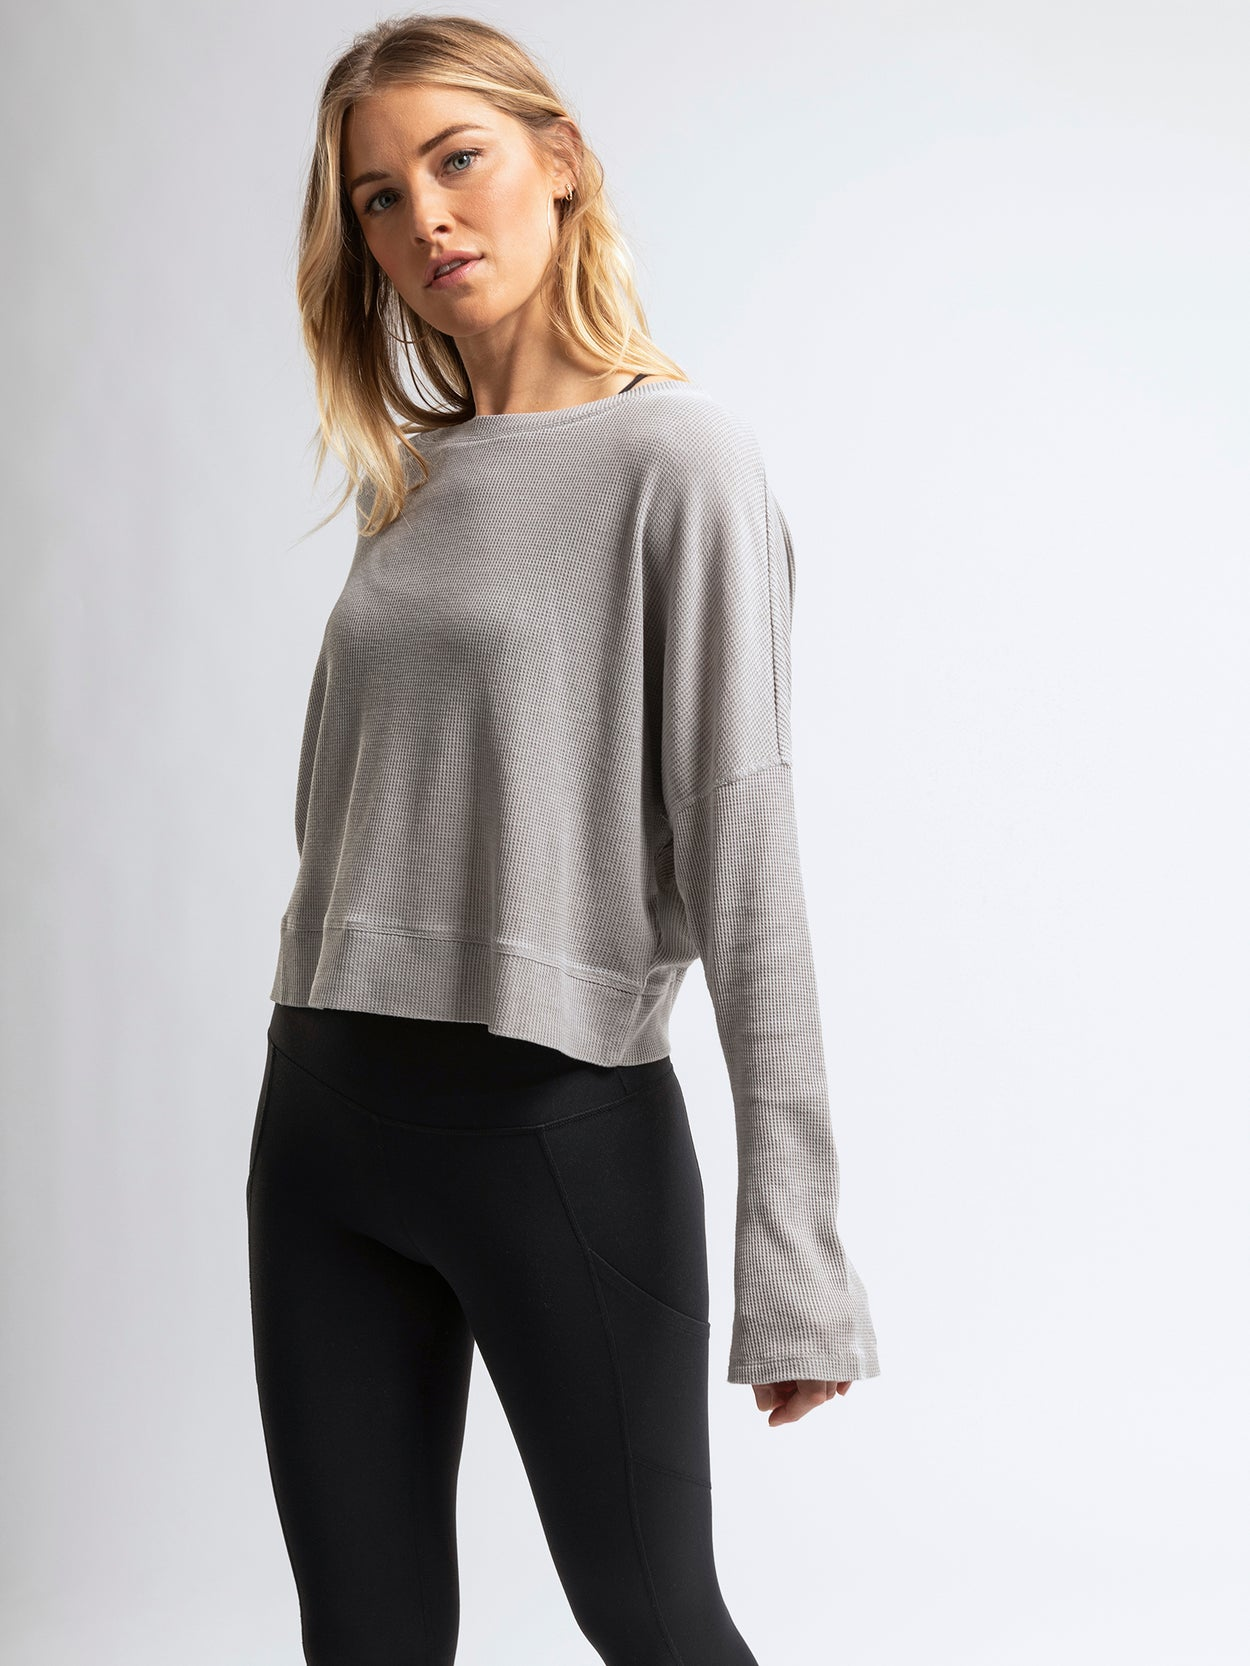 Textured, lightweight, long sleeve top with flared sleeves.